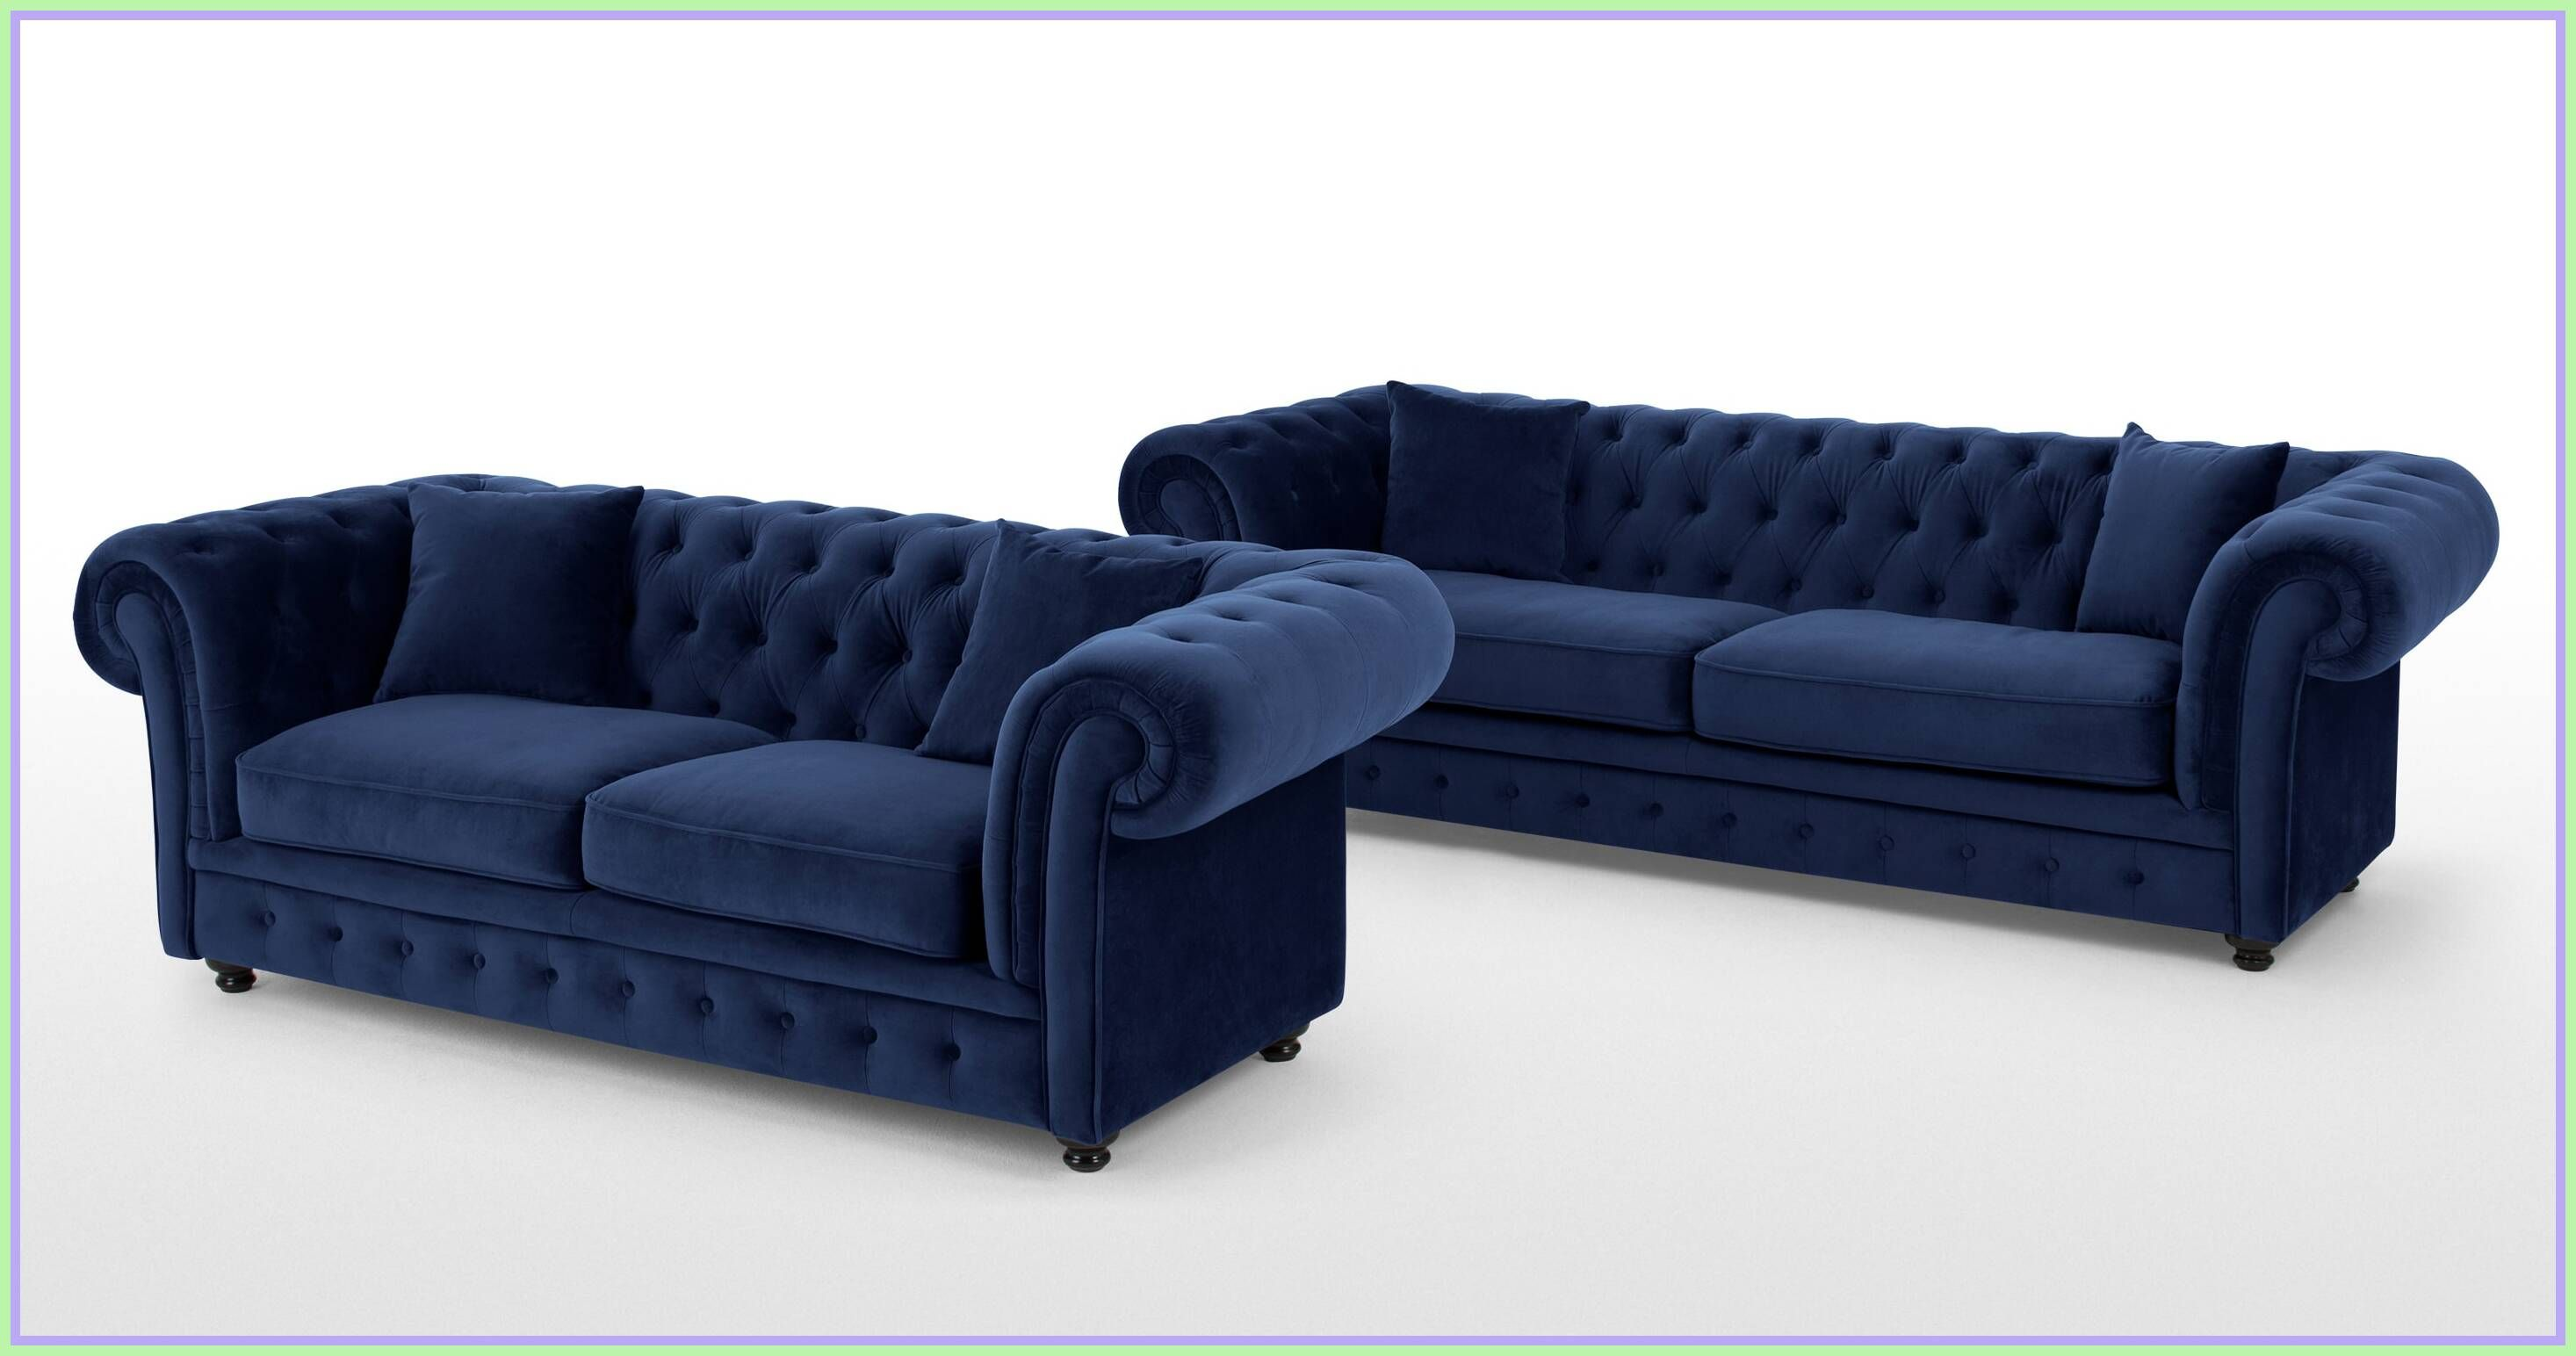 122 Reference Of Blue Chesterfield Sofa Uk In 2020 Chesterfield Sofa Uk Blue Sofa Blue Sofa Living